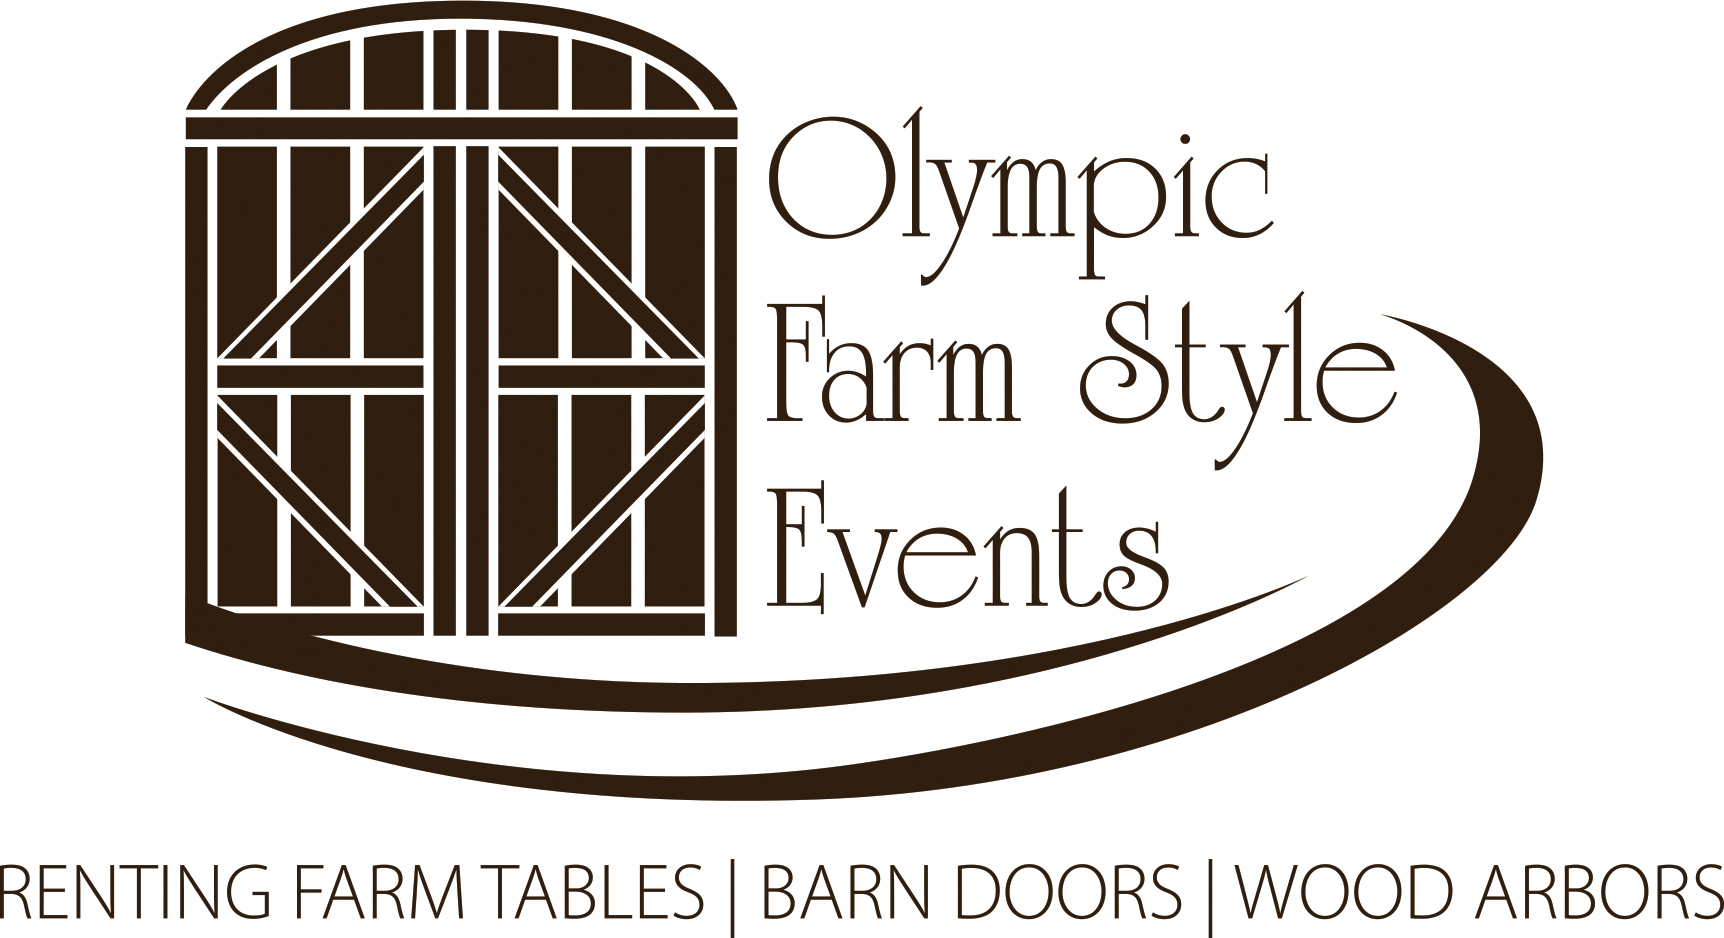 Tremendous Farm Table Bench Chair Rentals Olympic Farm Style Events Caraccident5 Cool Chair Designs And Ideas Caraccident5Info